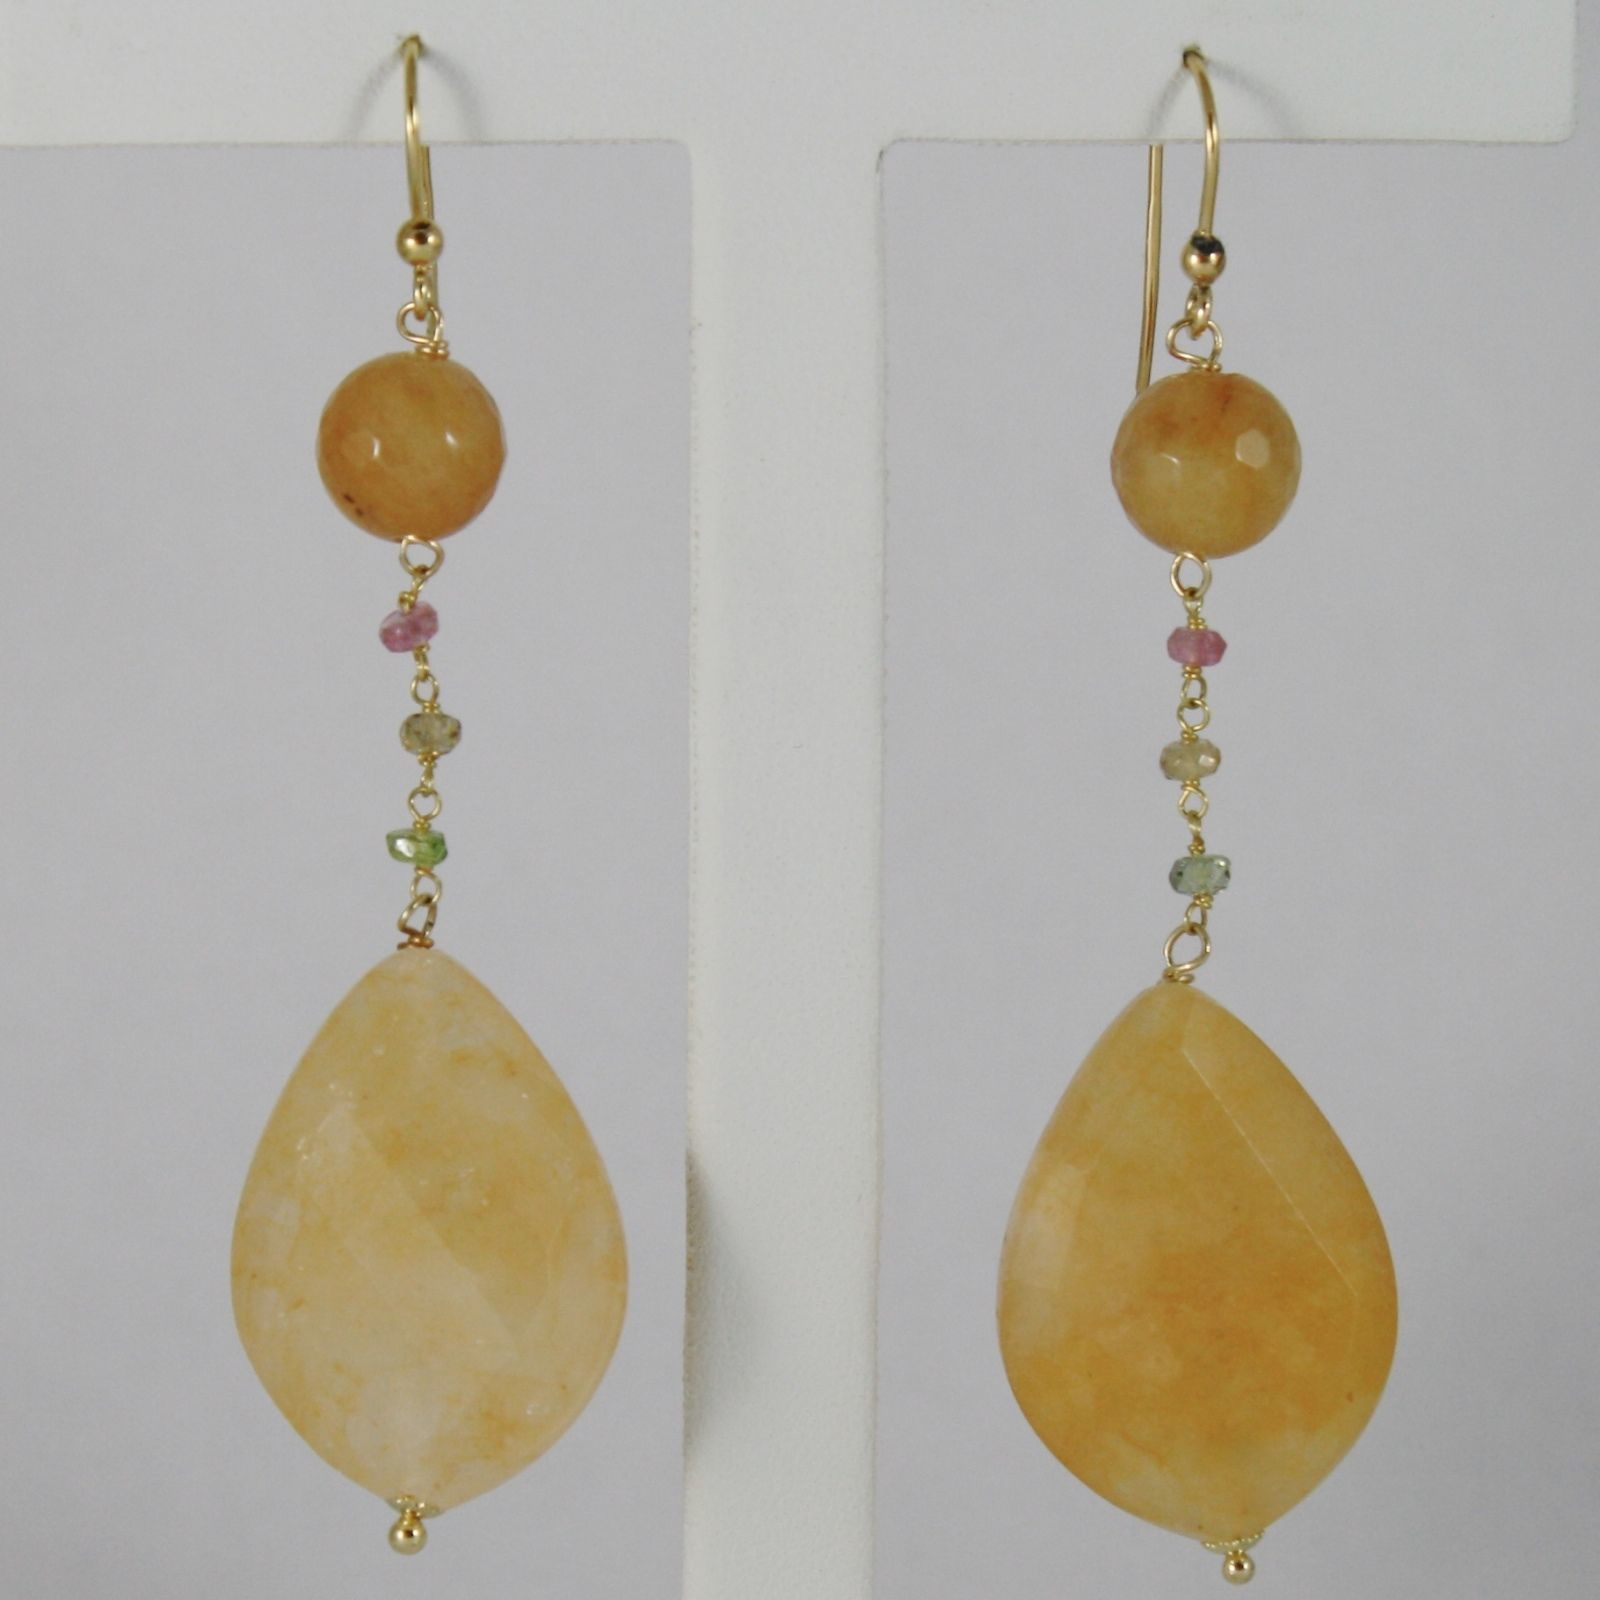 18K YELLOW GOLD PENDANT EARRINGS ARAGONITE DROP AGATE TOURMALINE MADE IN ITALY